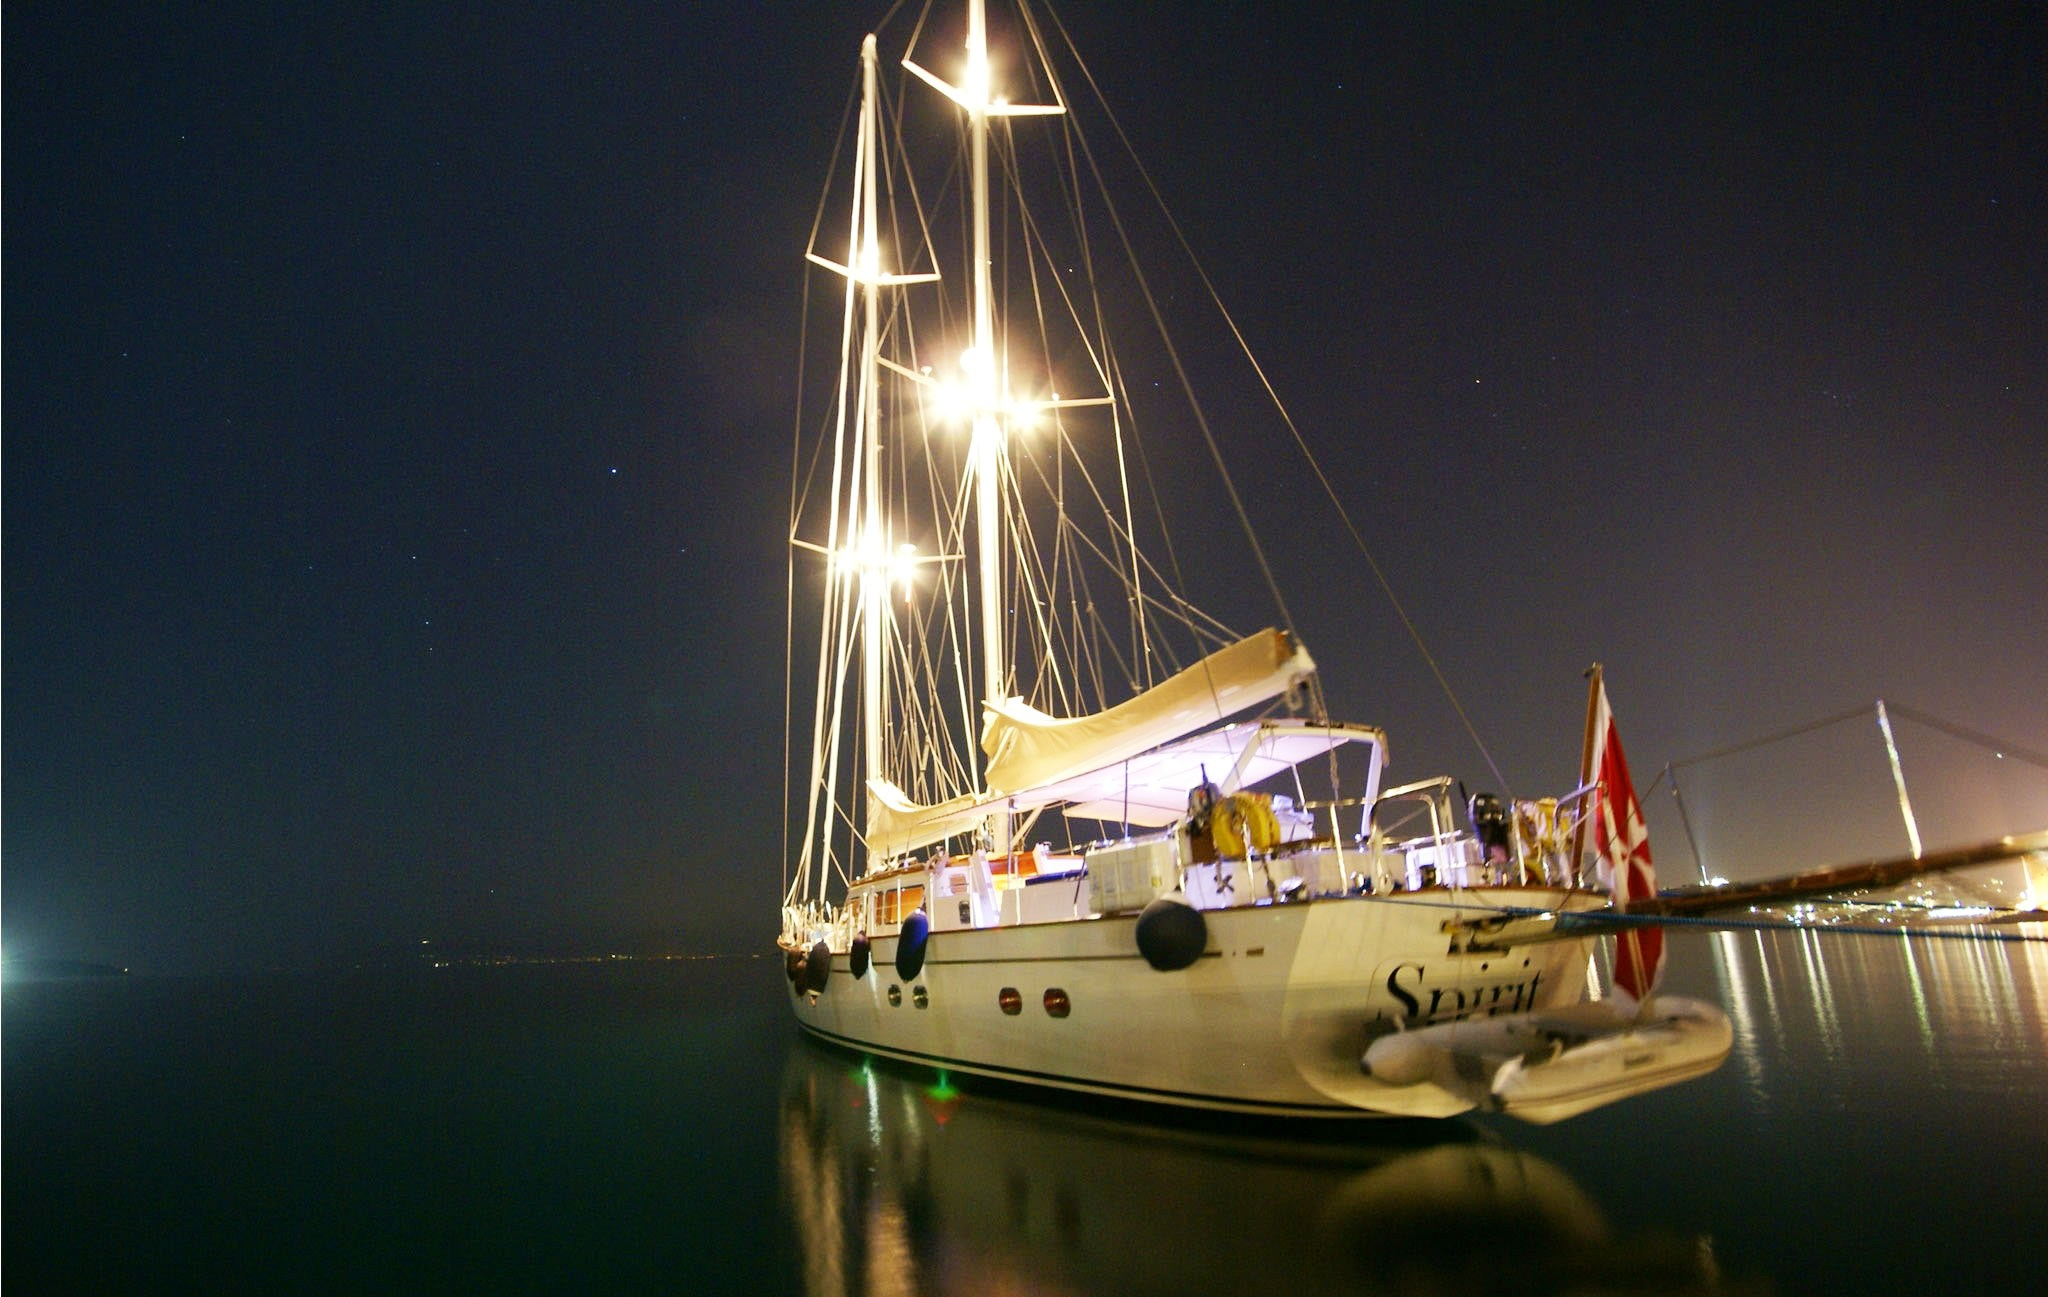 SPIRIT OF THE EAST Yacht Charter Details Aegean Yacht